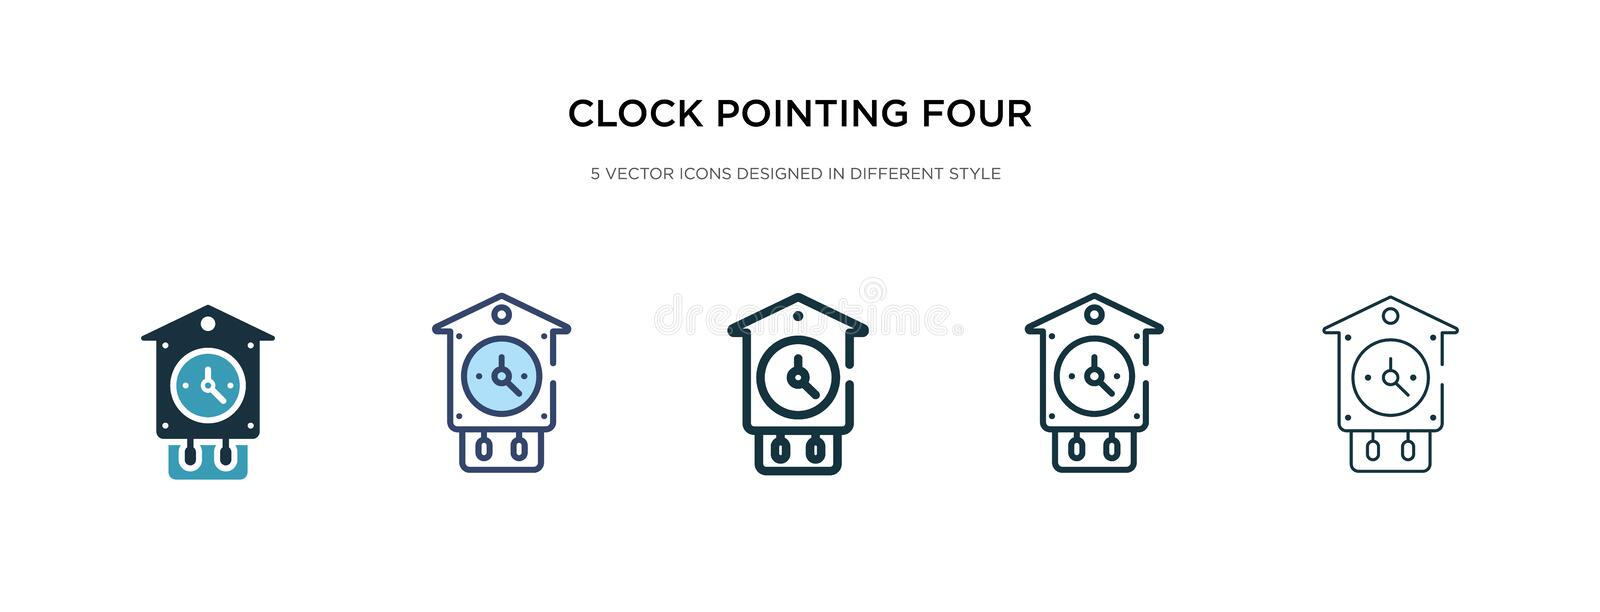 Clock pointing four o`clock icon in different style vector illustration. two colored and black clock pointing four o`clock vecto royalty free illustration